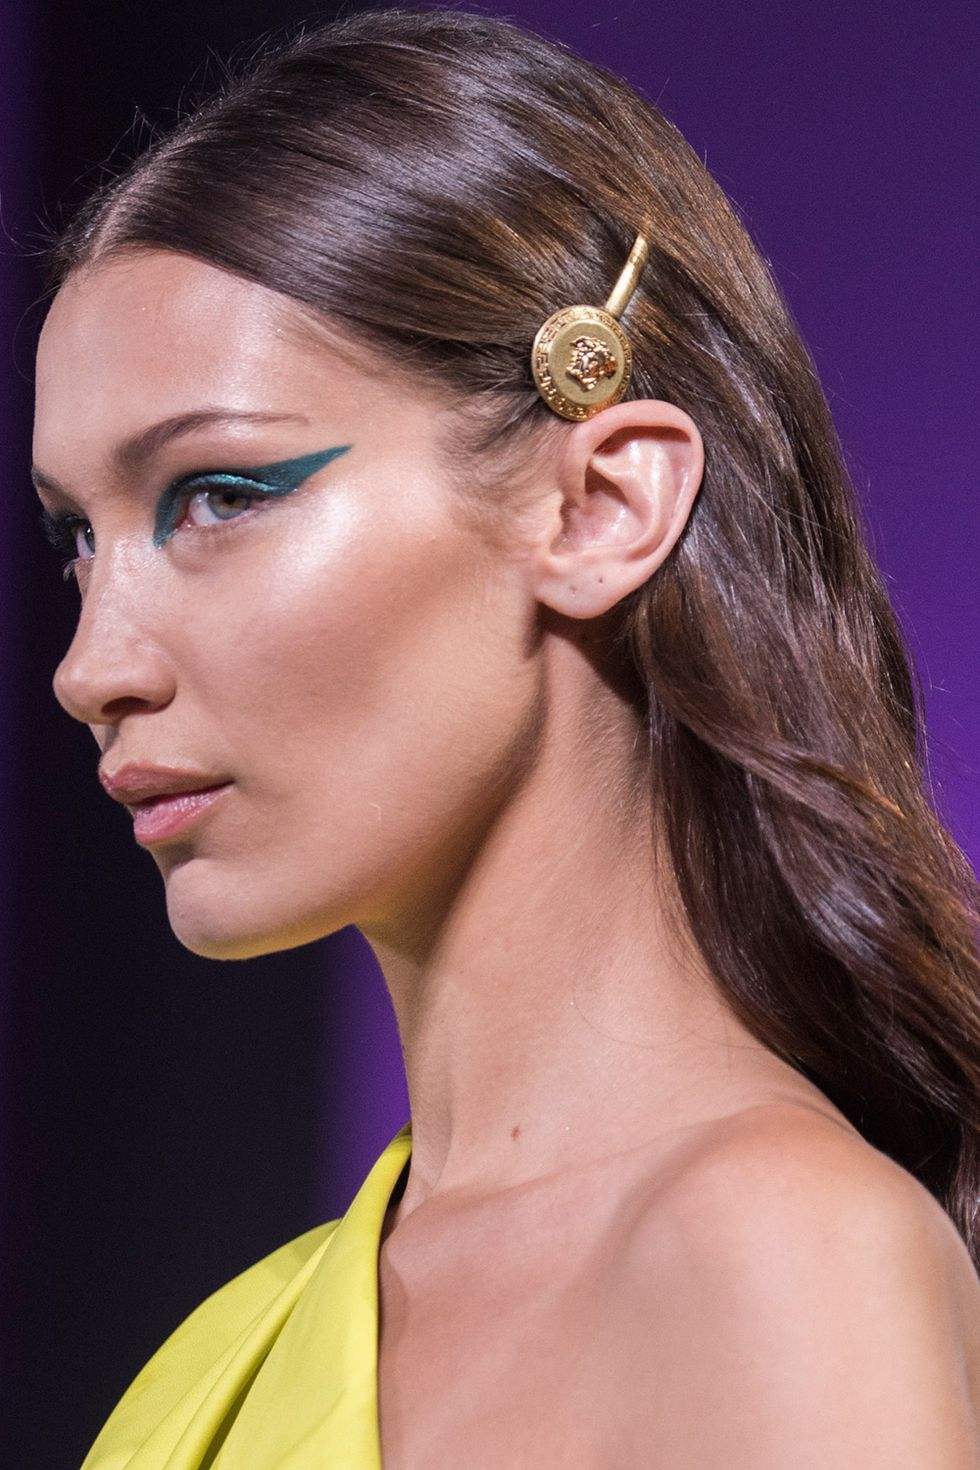 Makeup Trends Spring 2020.6 Spring Summer 2020 Hair Trends To Try Now Catwalk Hair